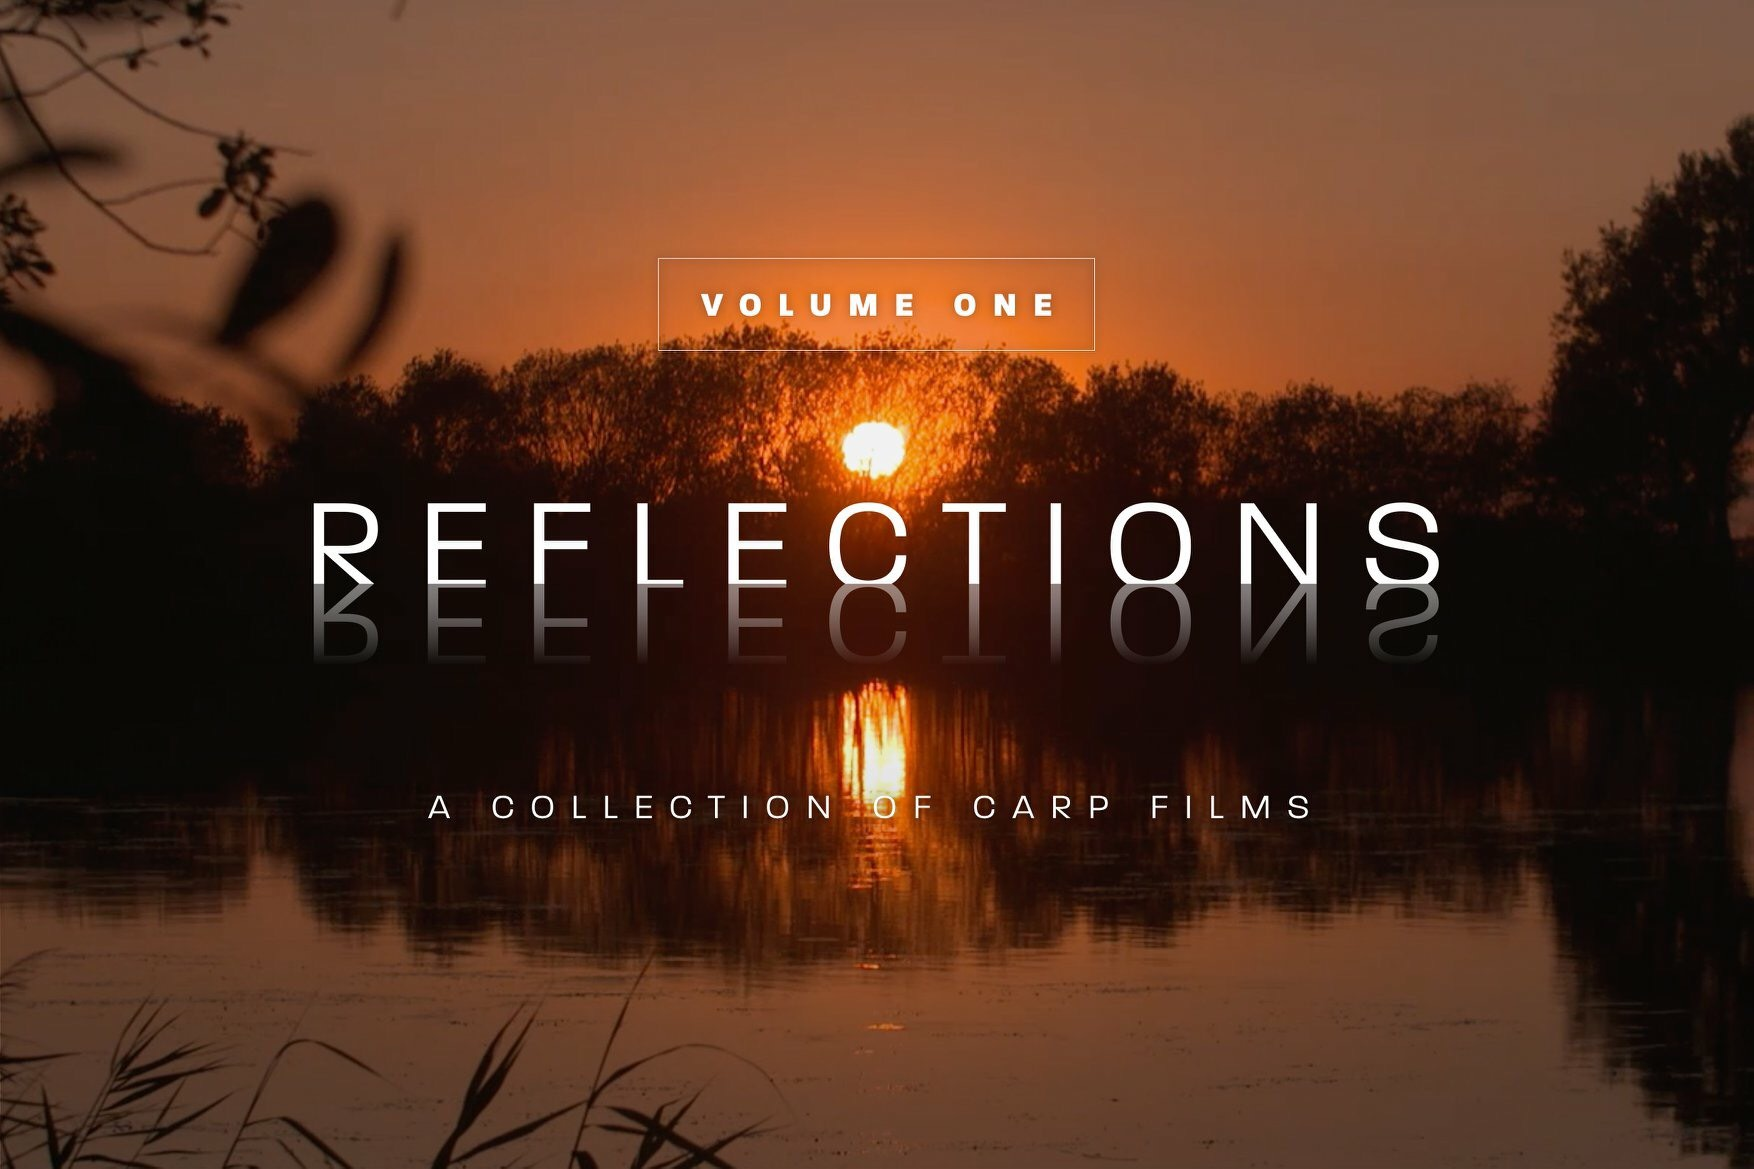 Image 3a - Reflections 2.jpg